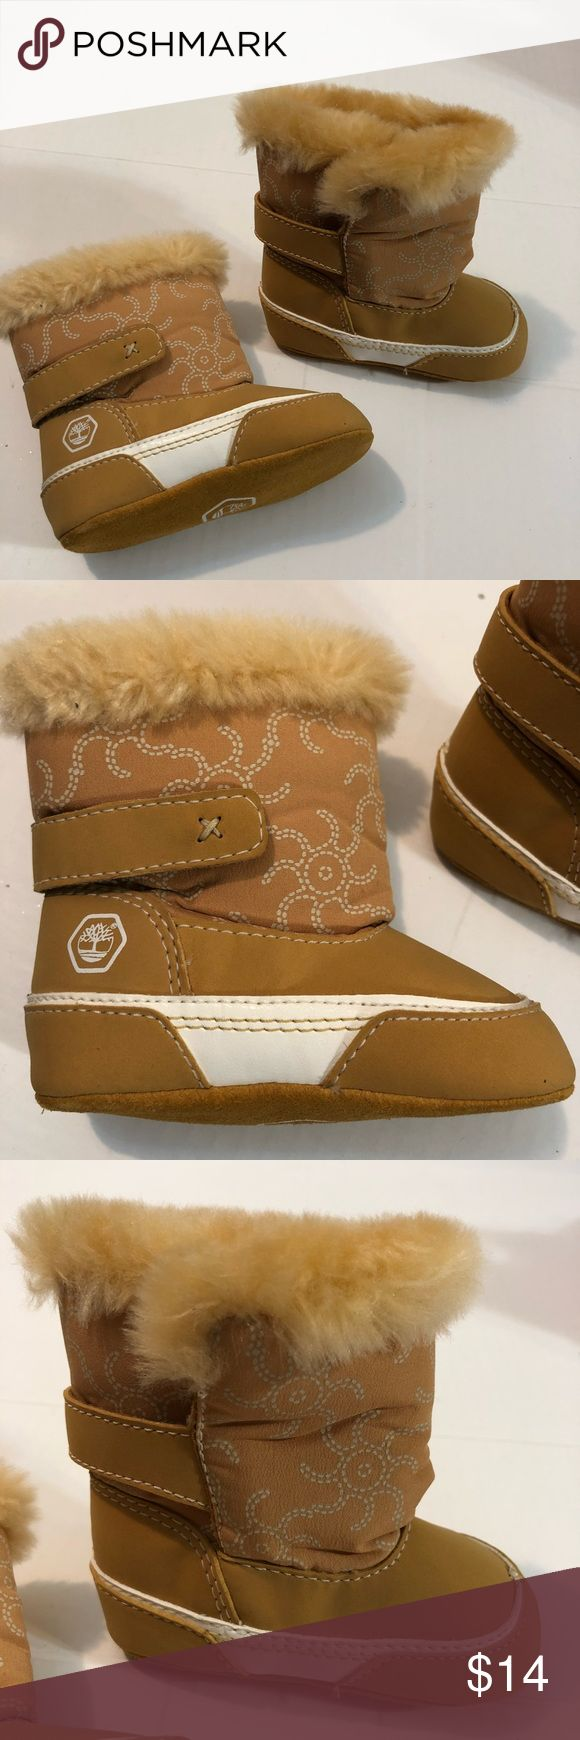 Infant Baby Timberland Boots Sz 2 like new Infant Baby Timberland Boots Sz 2 like new Timberland Shoes Boots